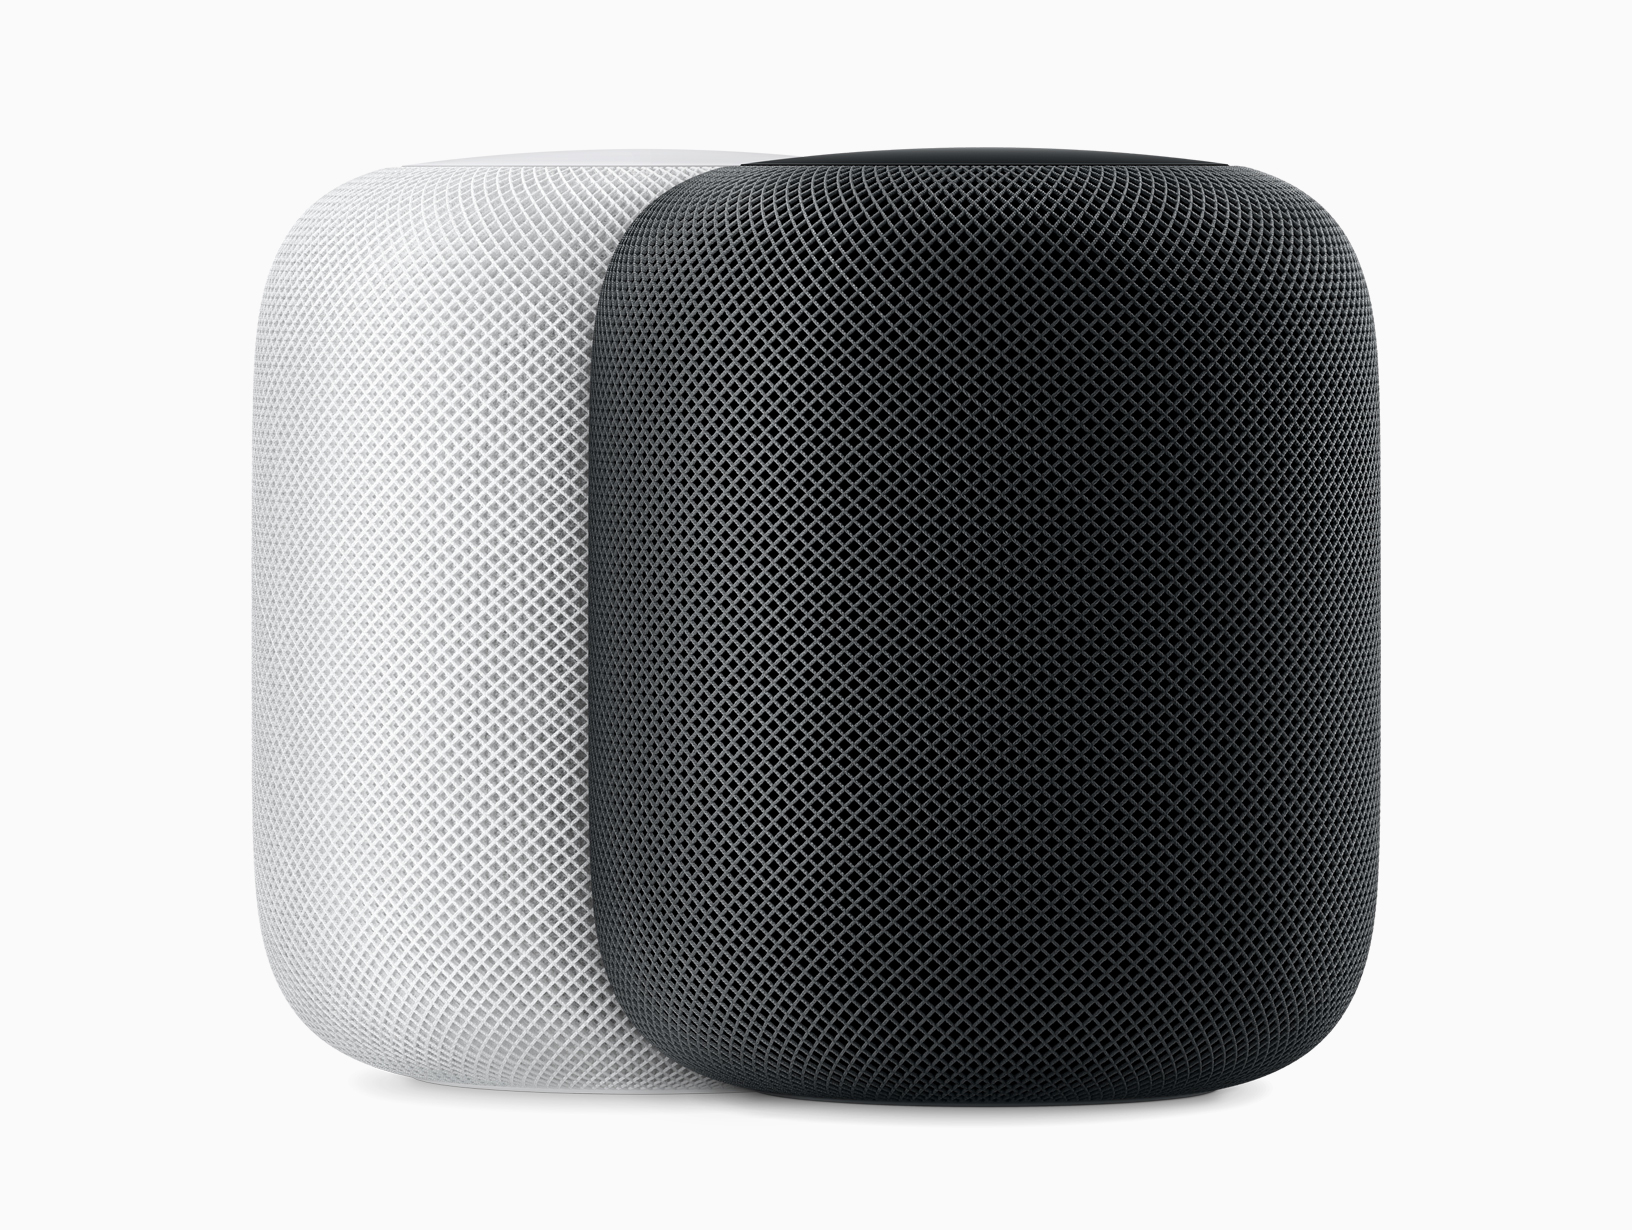 Hands-on: HomePod's AirPlay 2 multi-room audio, stereo pairing, and Calendar support